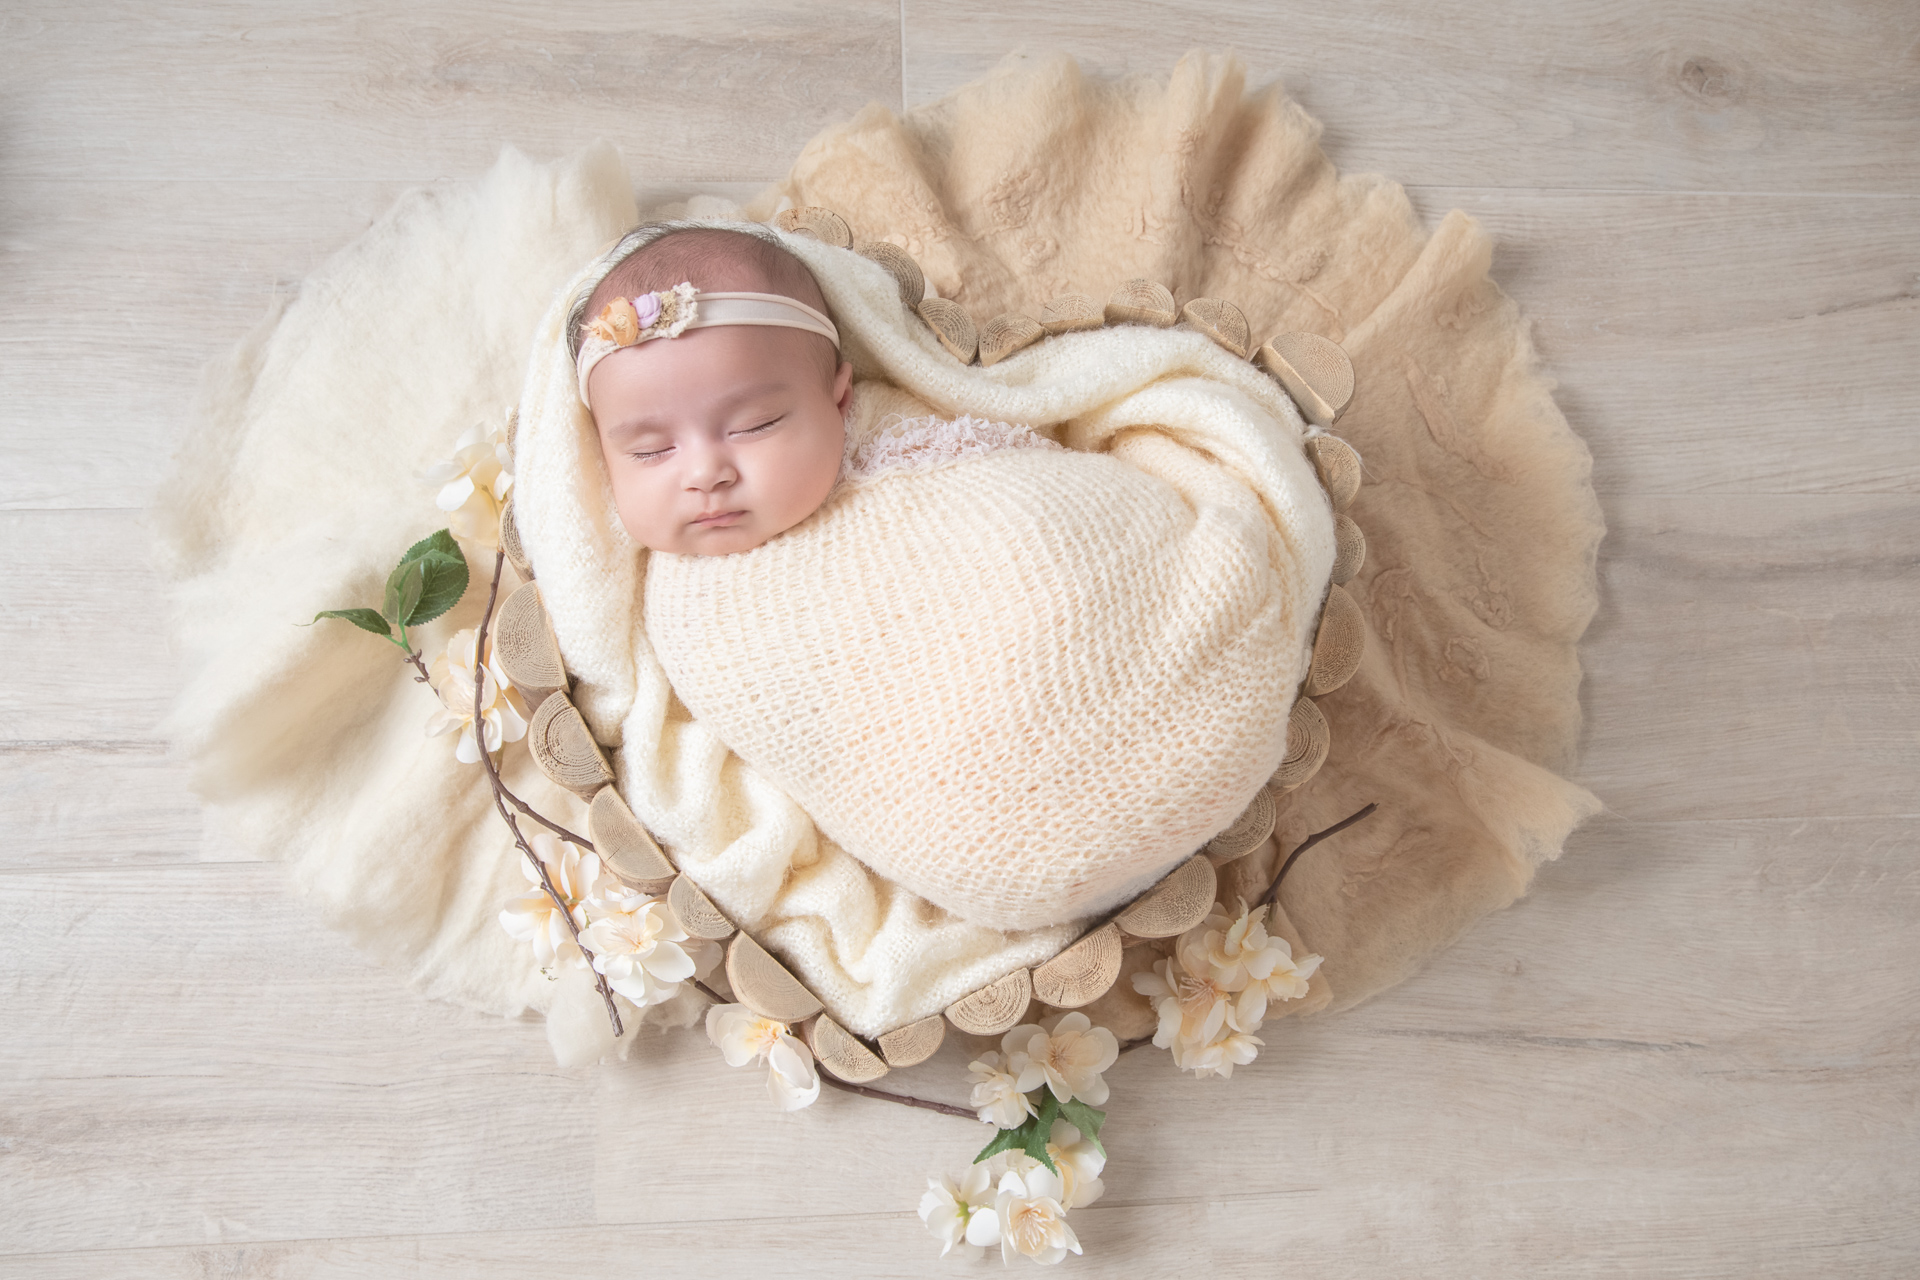 Newborn wearing light beige wrap and headband rests on wood shaped prop. Flowers decorate the scene.